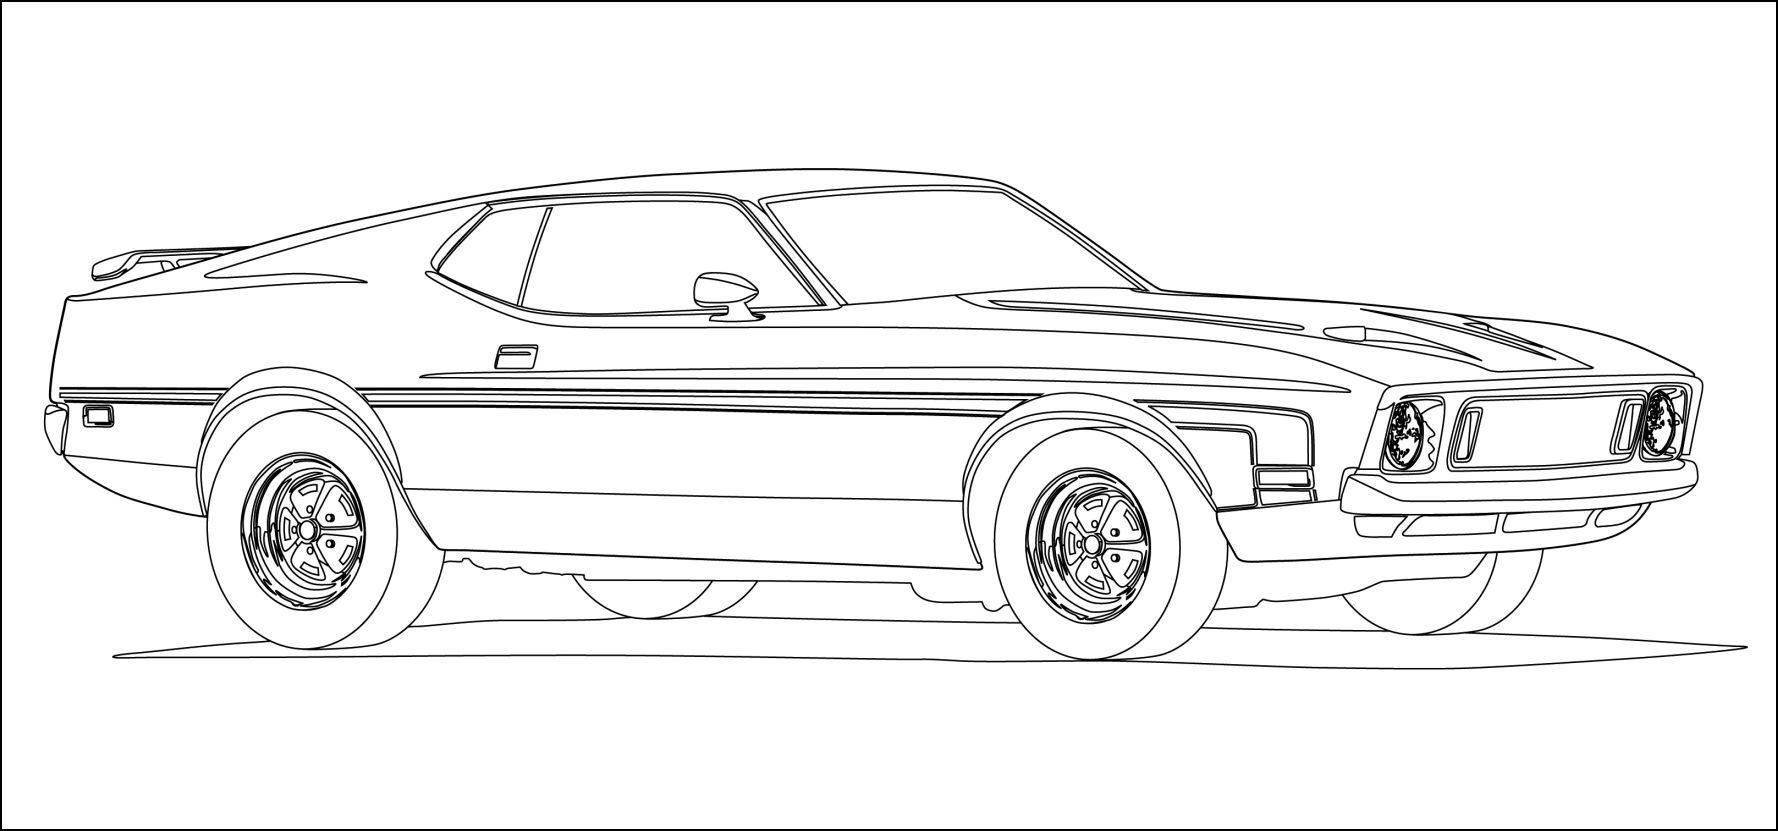 2011 ford mustang coloring pages 01 coloring pages cars coloring pages 2011 ford mustang. Black Bedroom Furniture Sets. Home Design Ideas